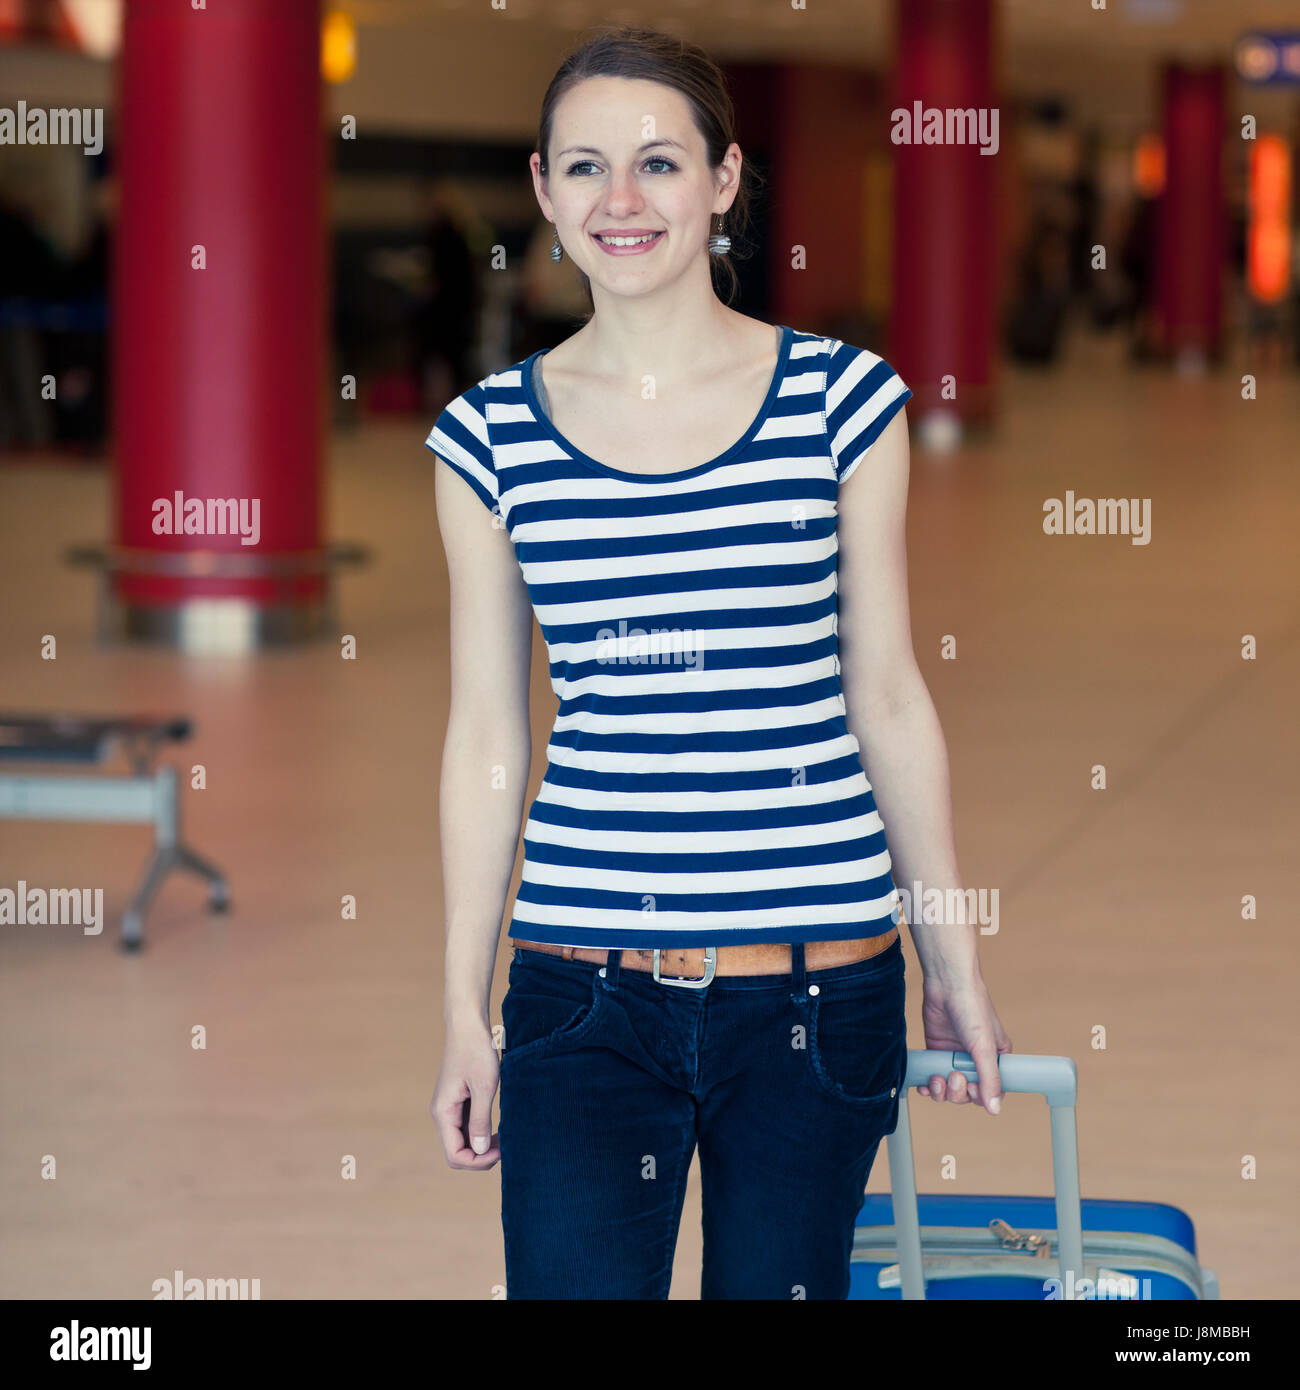 woman, travel, flight, passenger, airport, air, young, younger, woman, Stock Photo